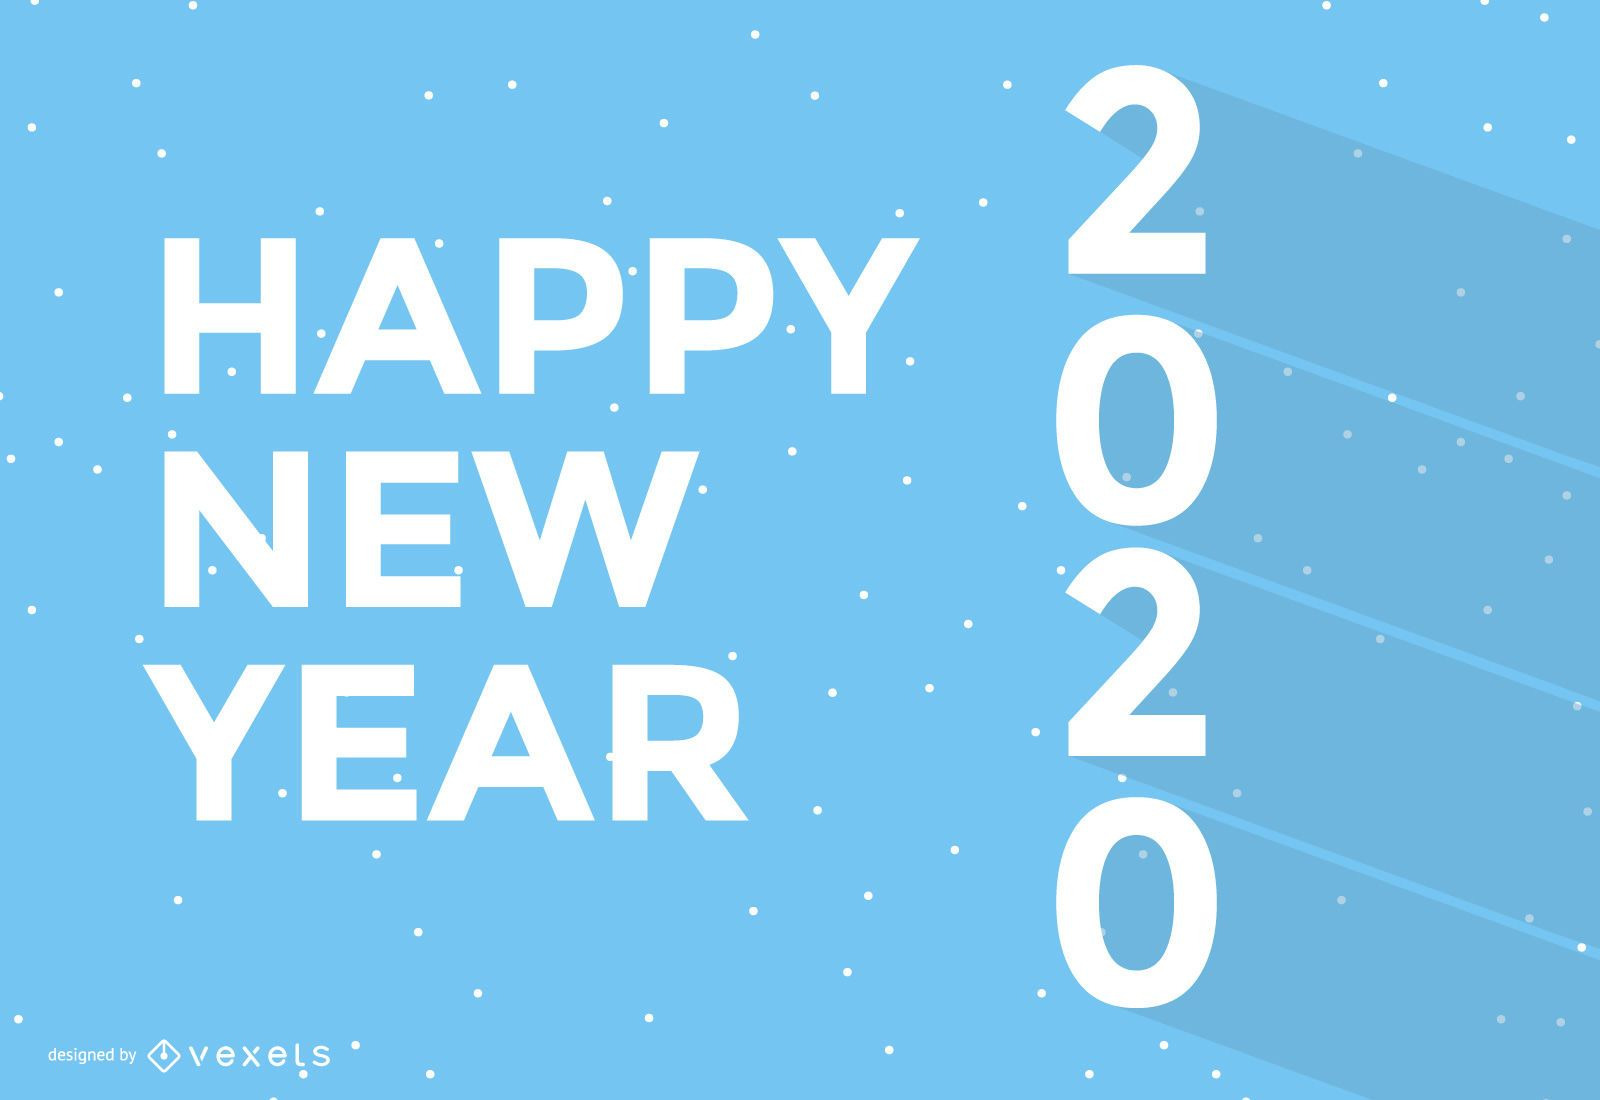 Simple New Year Wallpaper